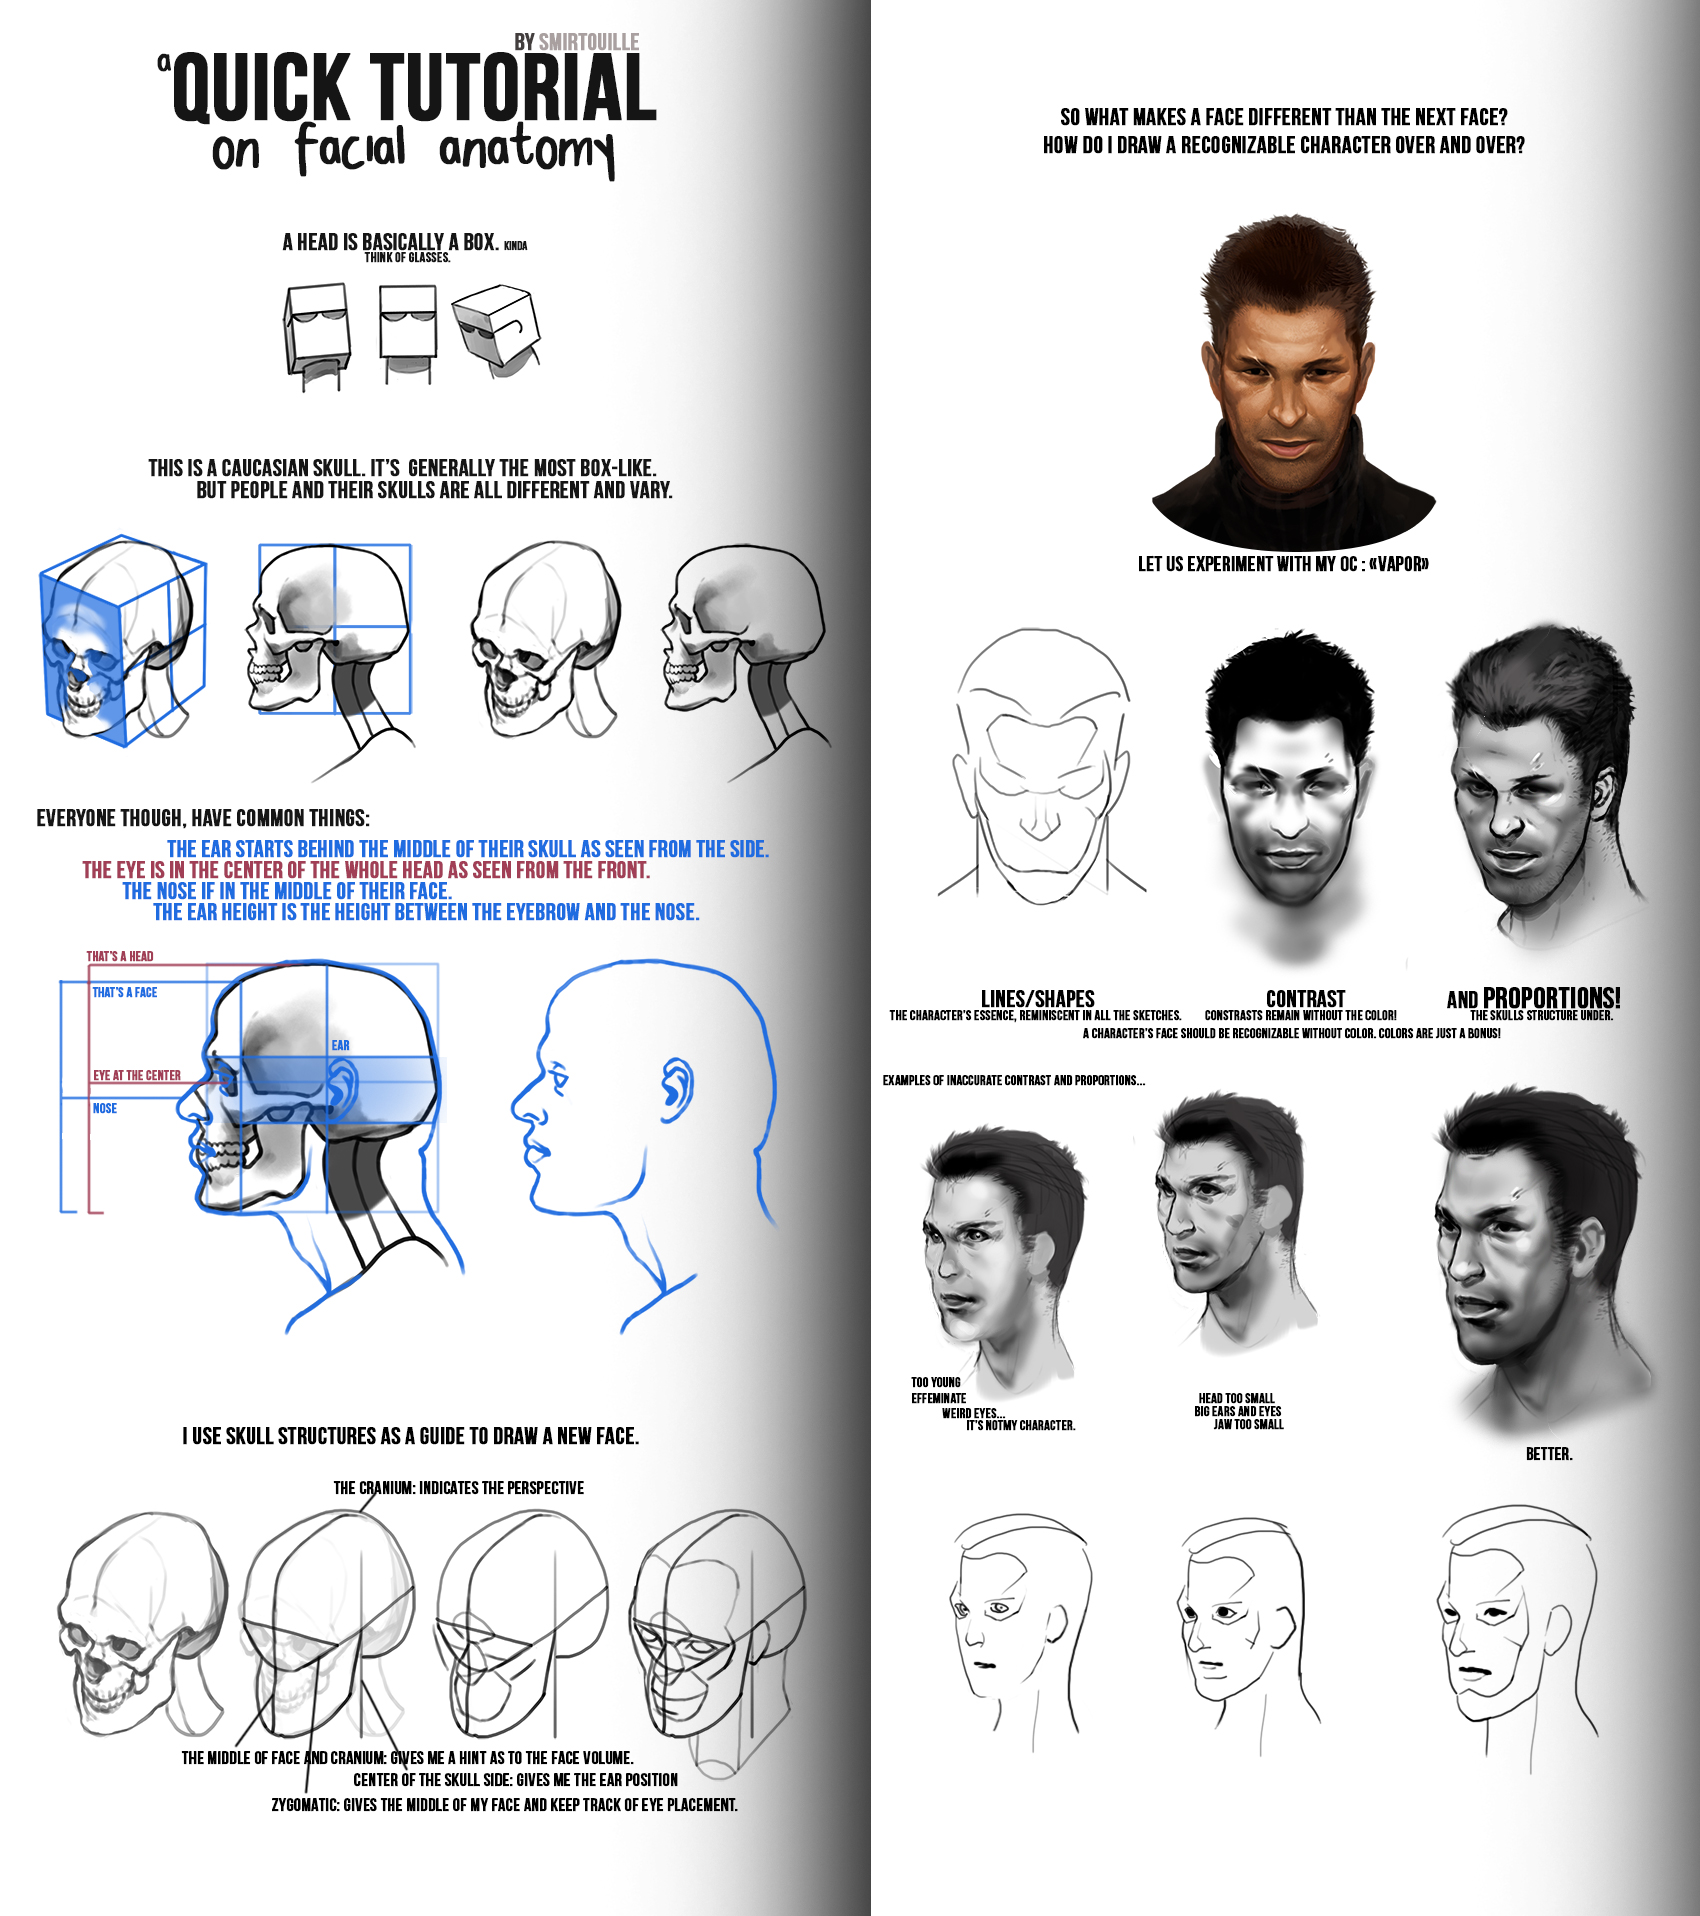 Quick Facial Anatomy Tips II by Smirtouille